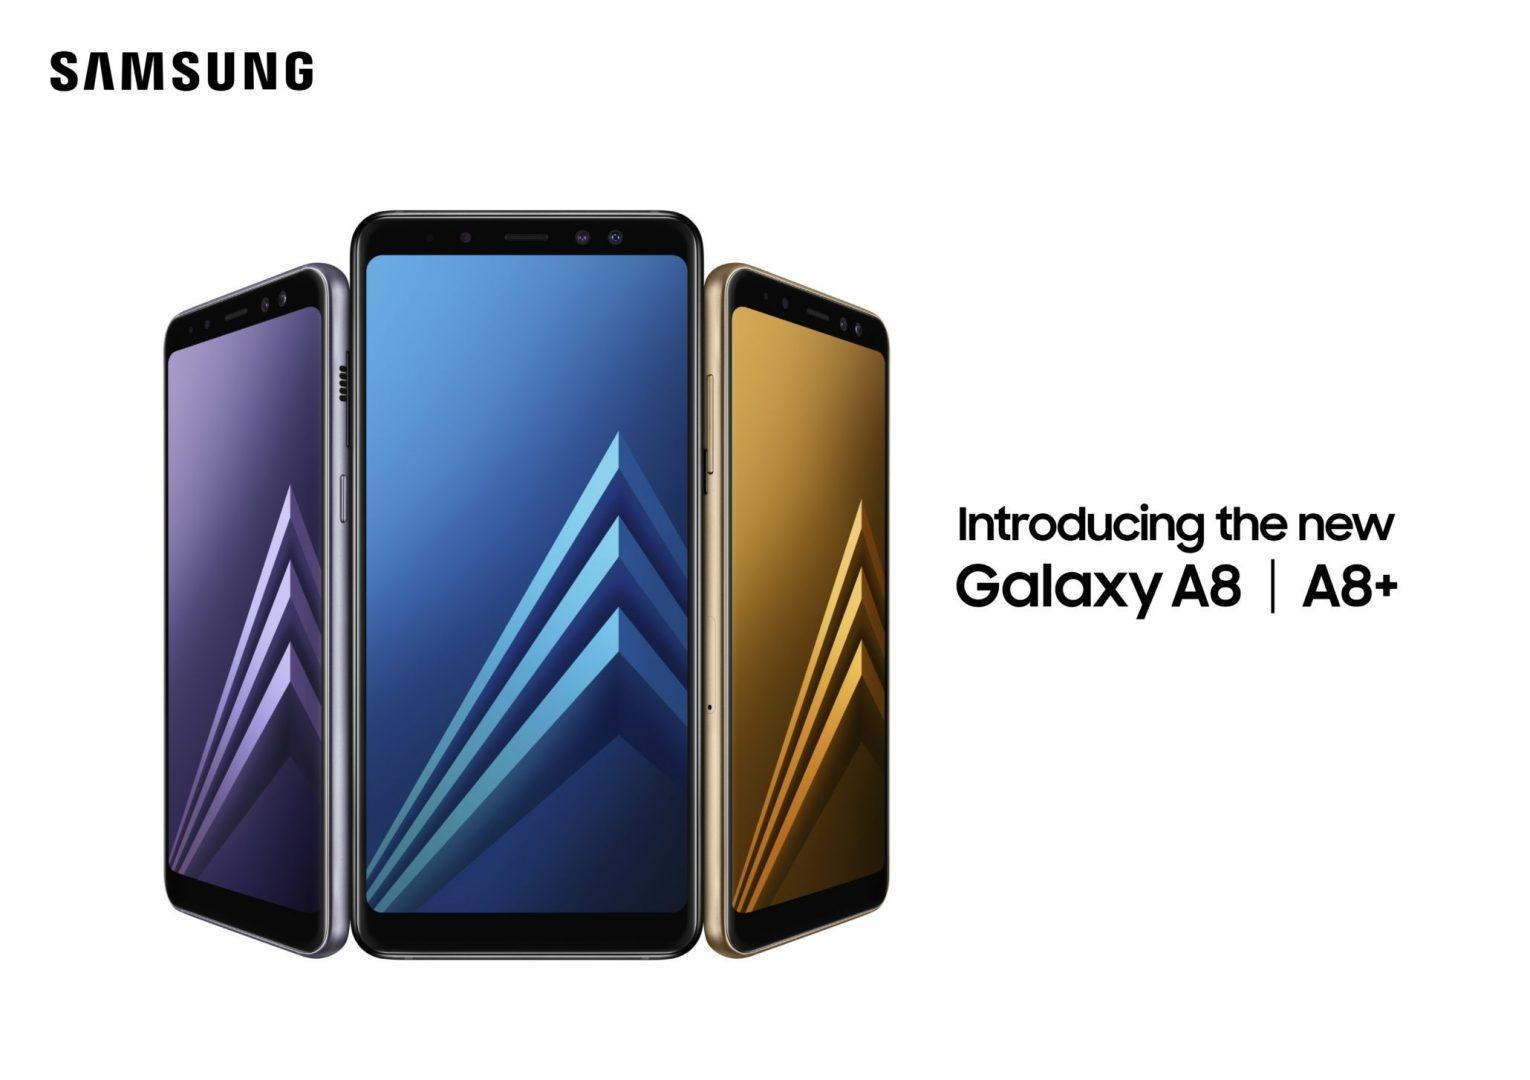 Galaxy A8(2018) and Galaxy A8 Plus(2018)